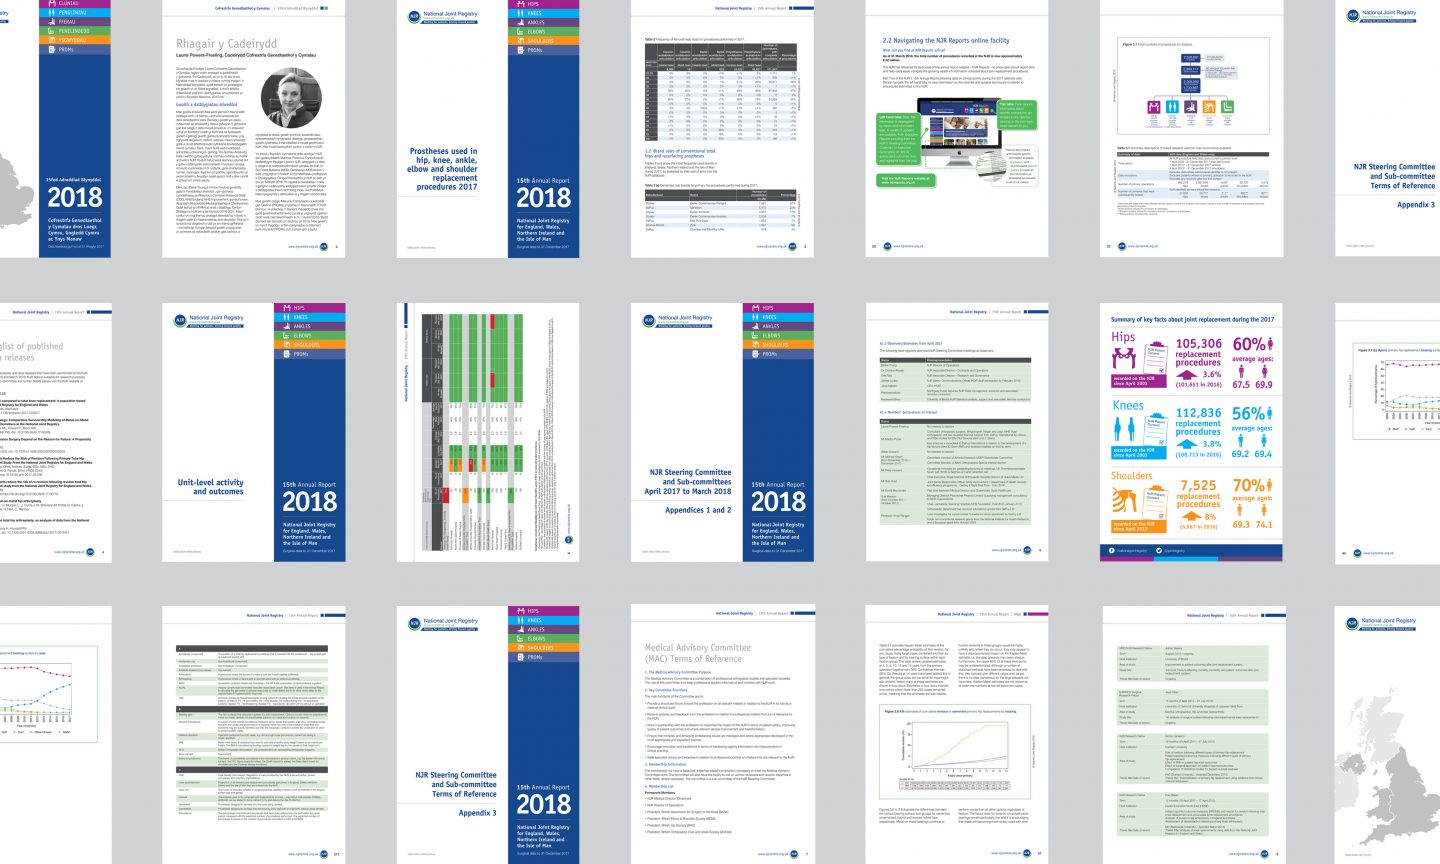 National Joint Registry annual report design